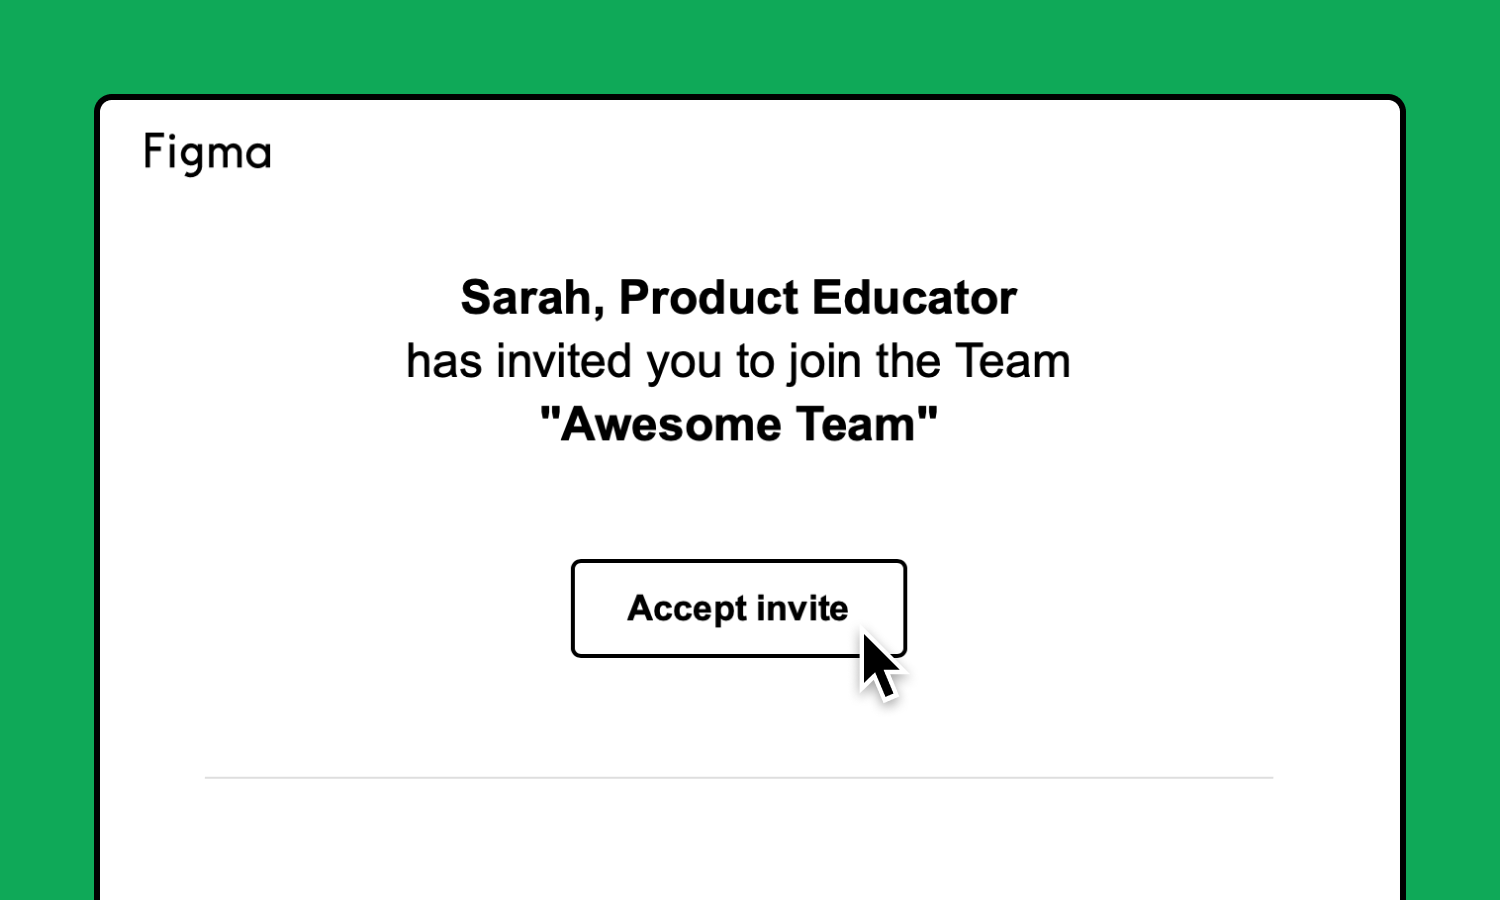 Email which invites the user to join the team